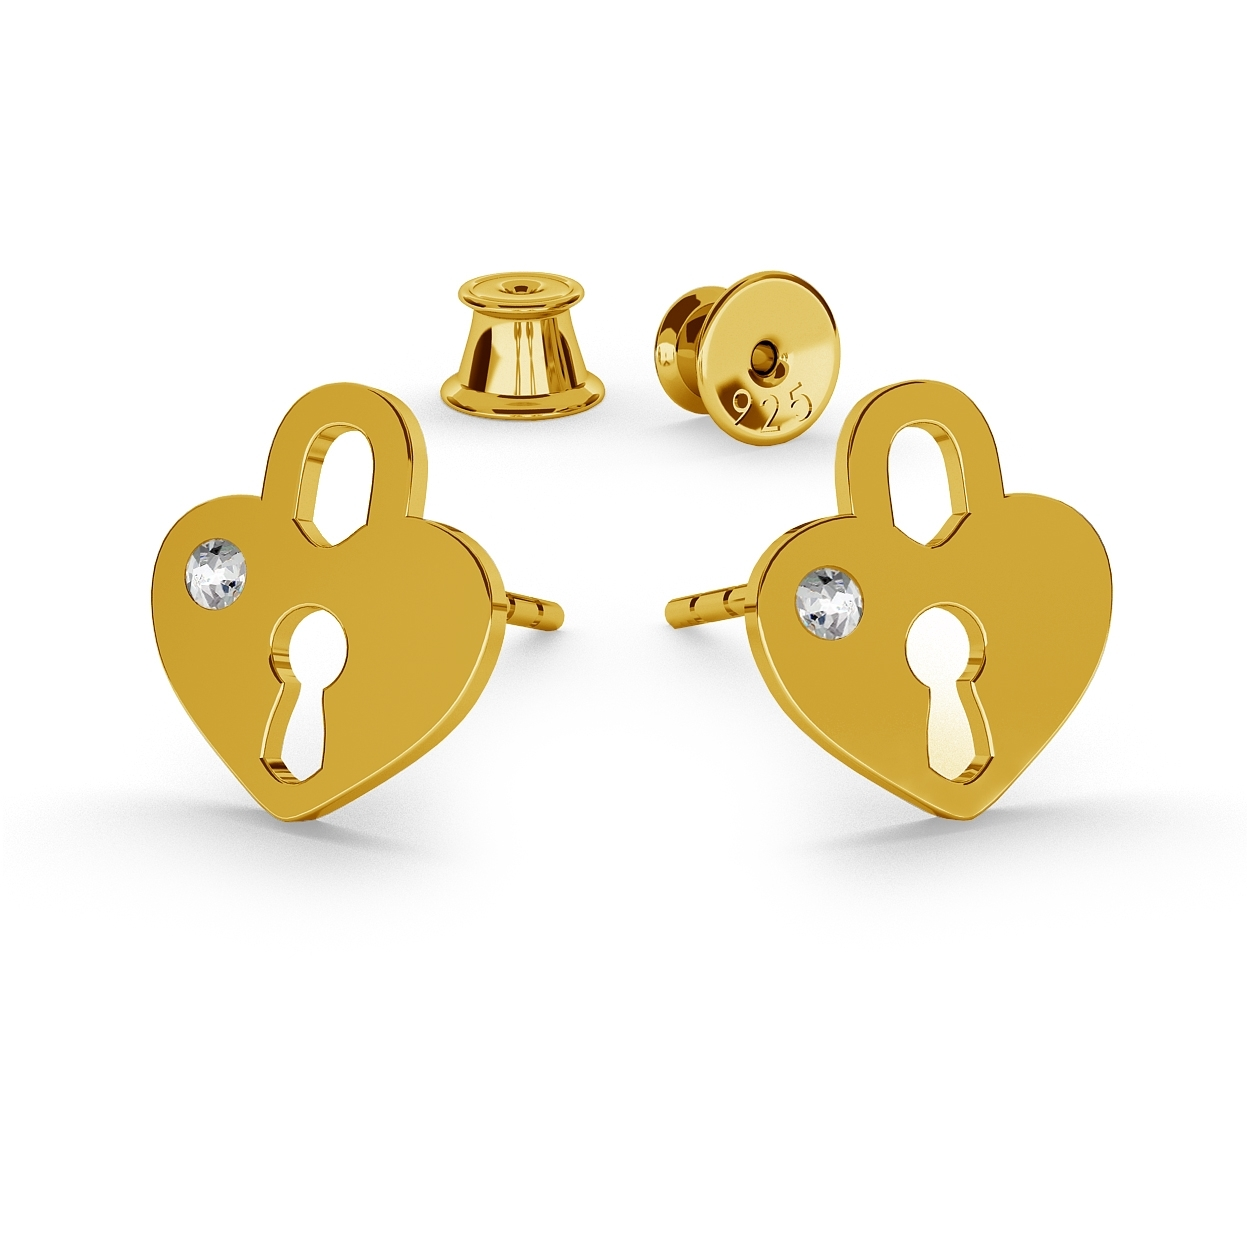 HEART PADLOCK EARRINGS, SWAROVSKI 2038 SS 6, STERLING SILVER (925) RHODIUM OR GOLD PLATED